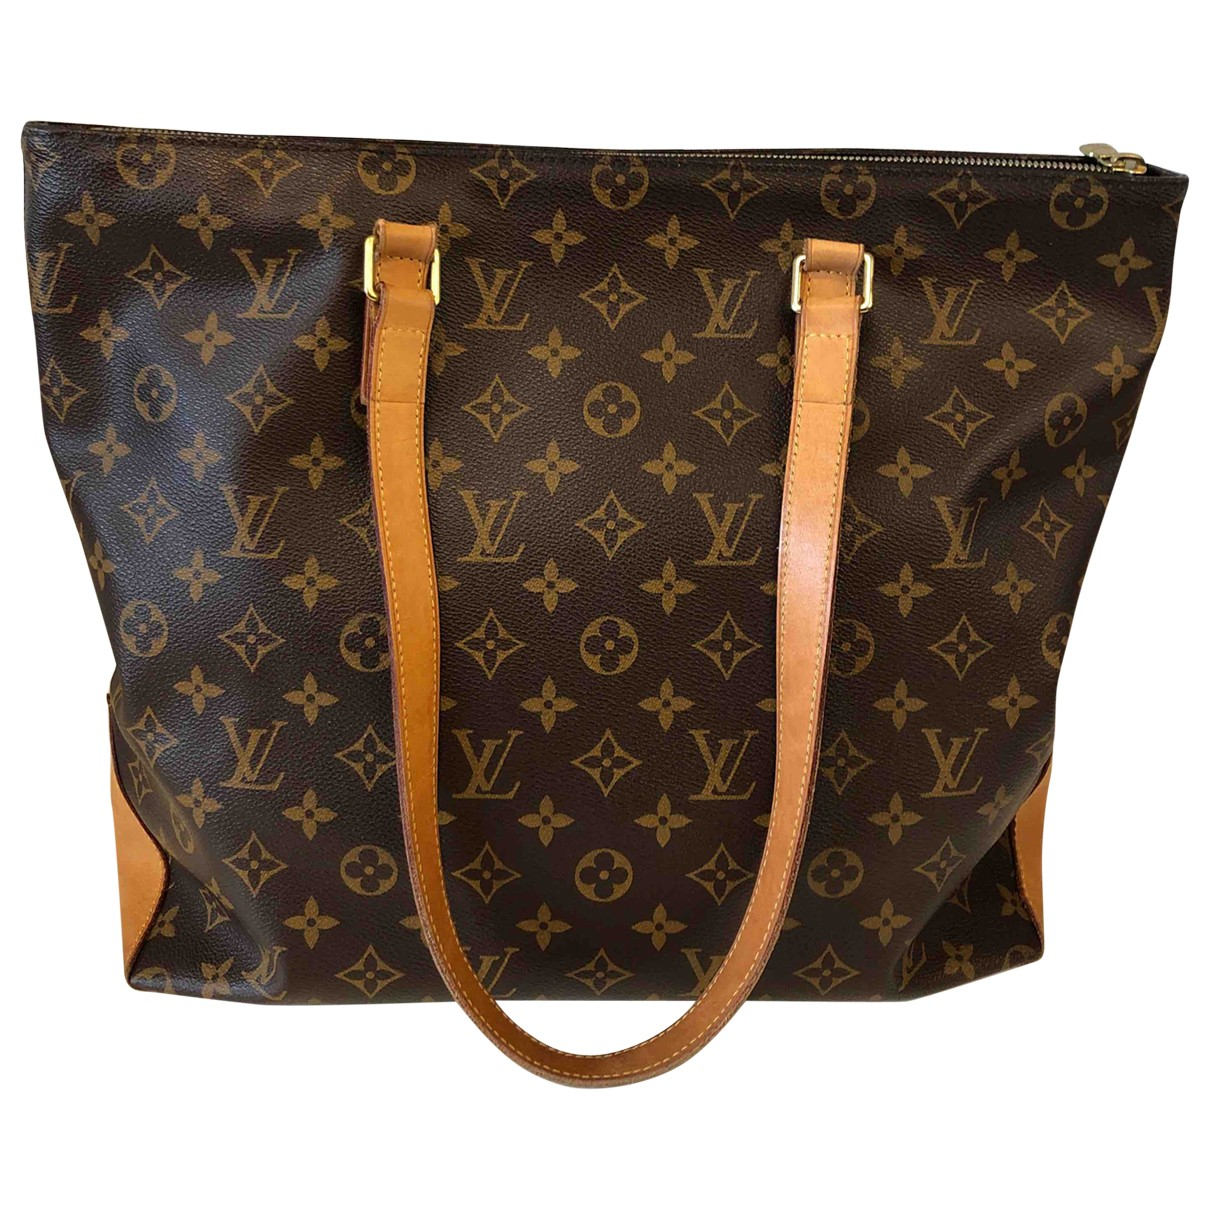 Louis Vuitton Mezzo  Brown Cloth handbag for Women N